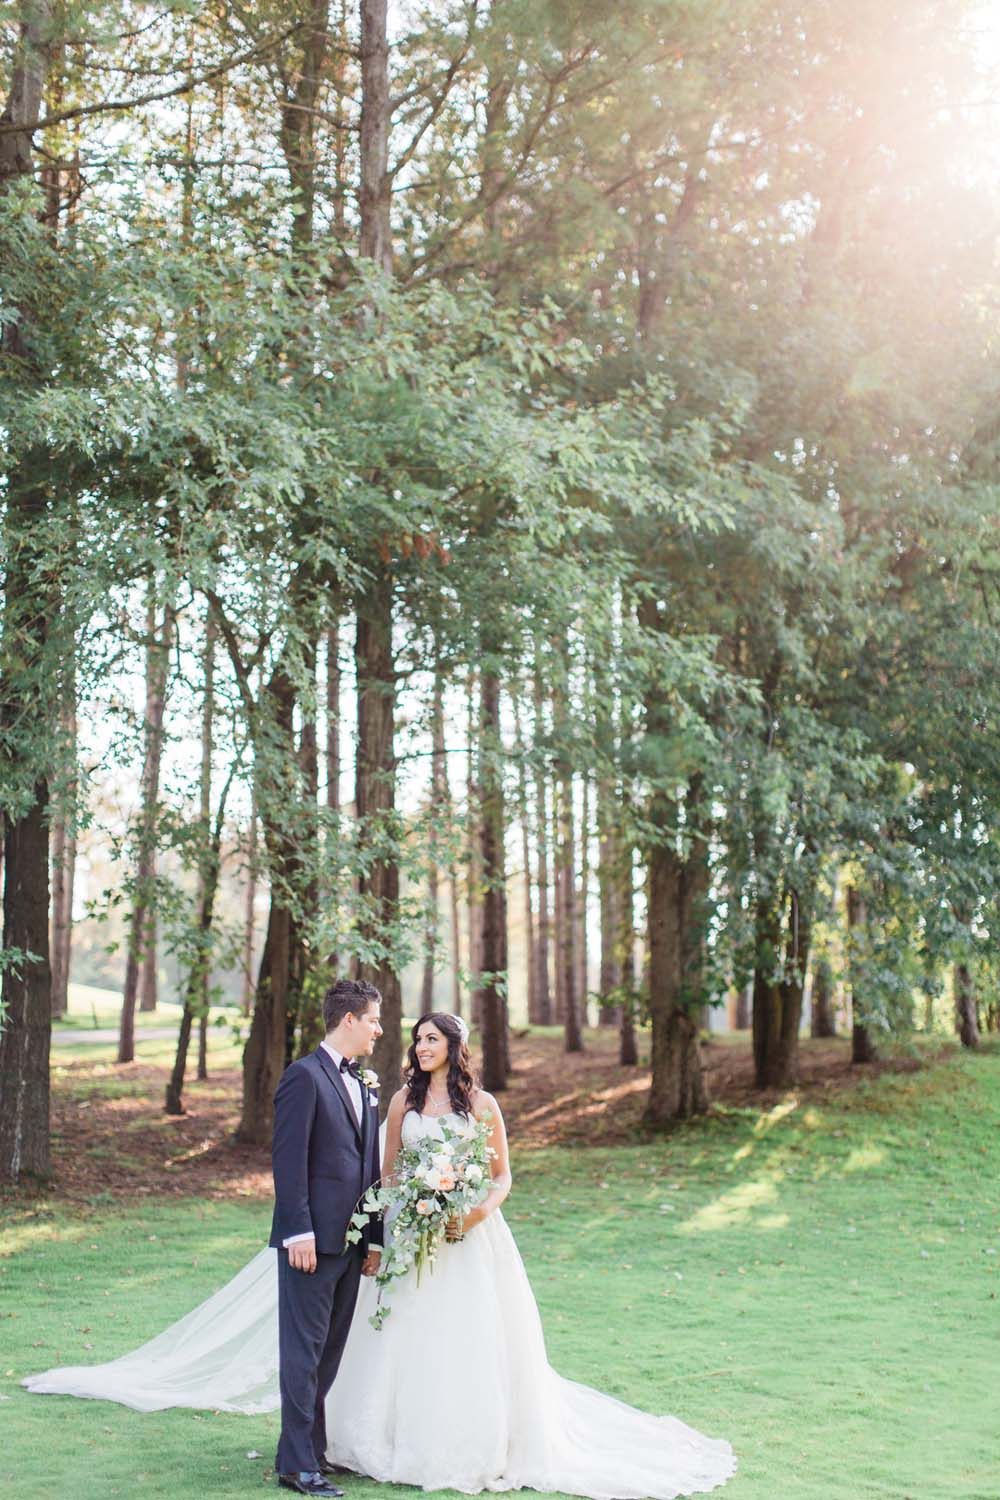 A Rustic, Whimsical Wedding in Tottenham - Couple outside